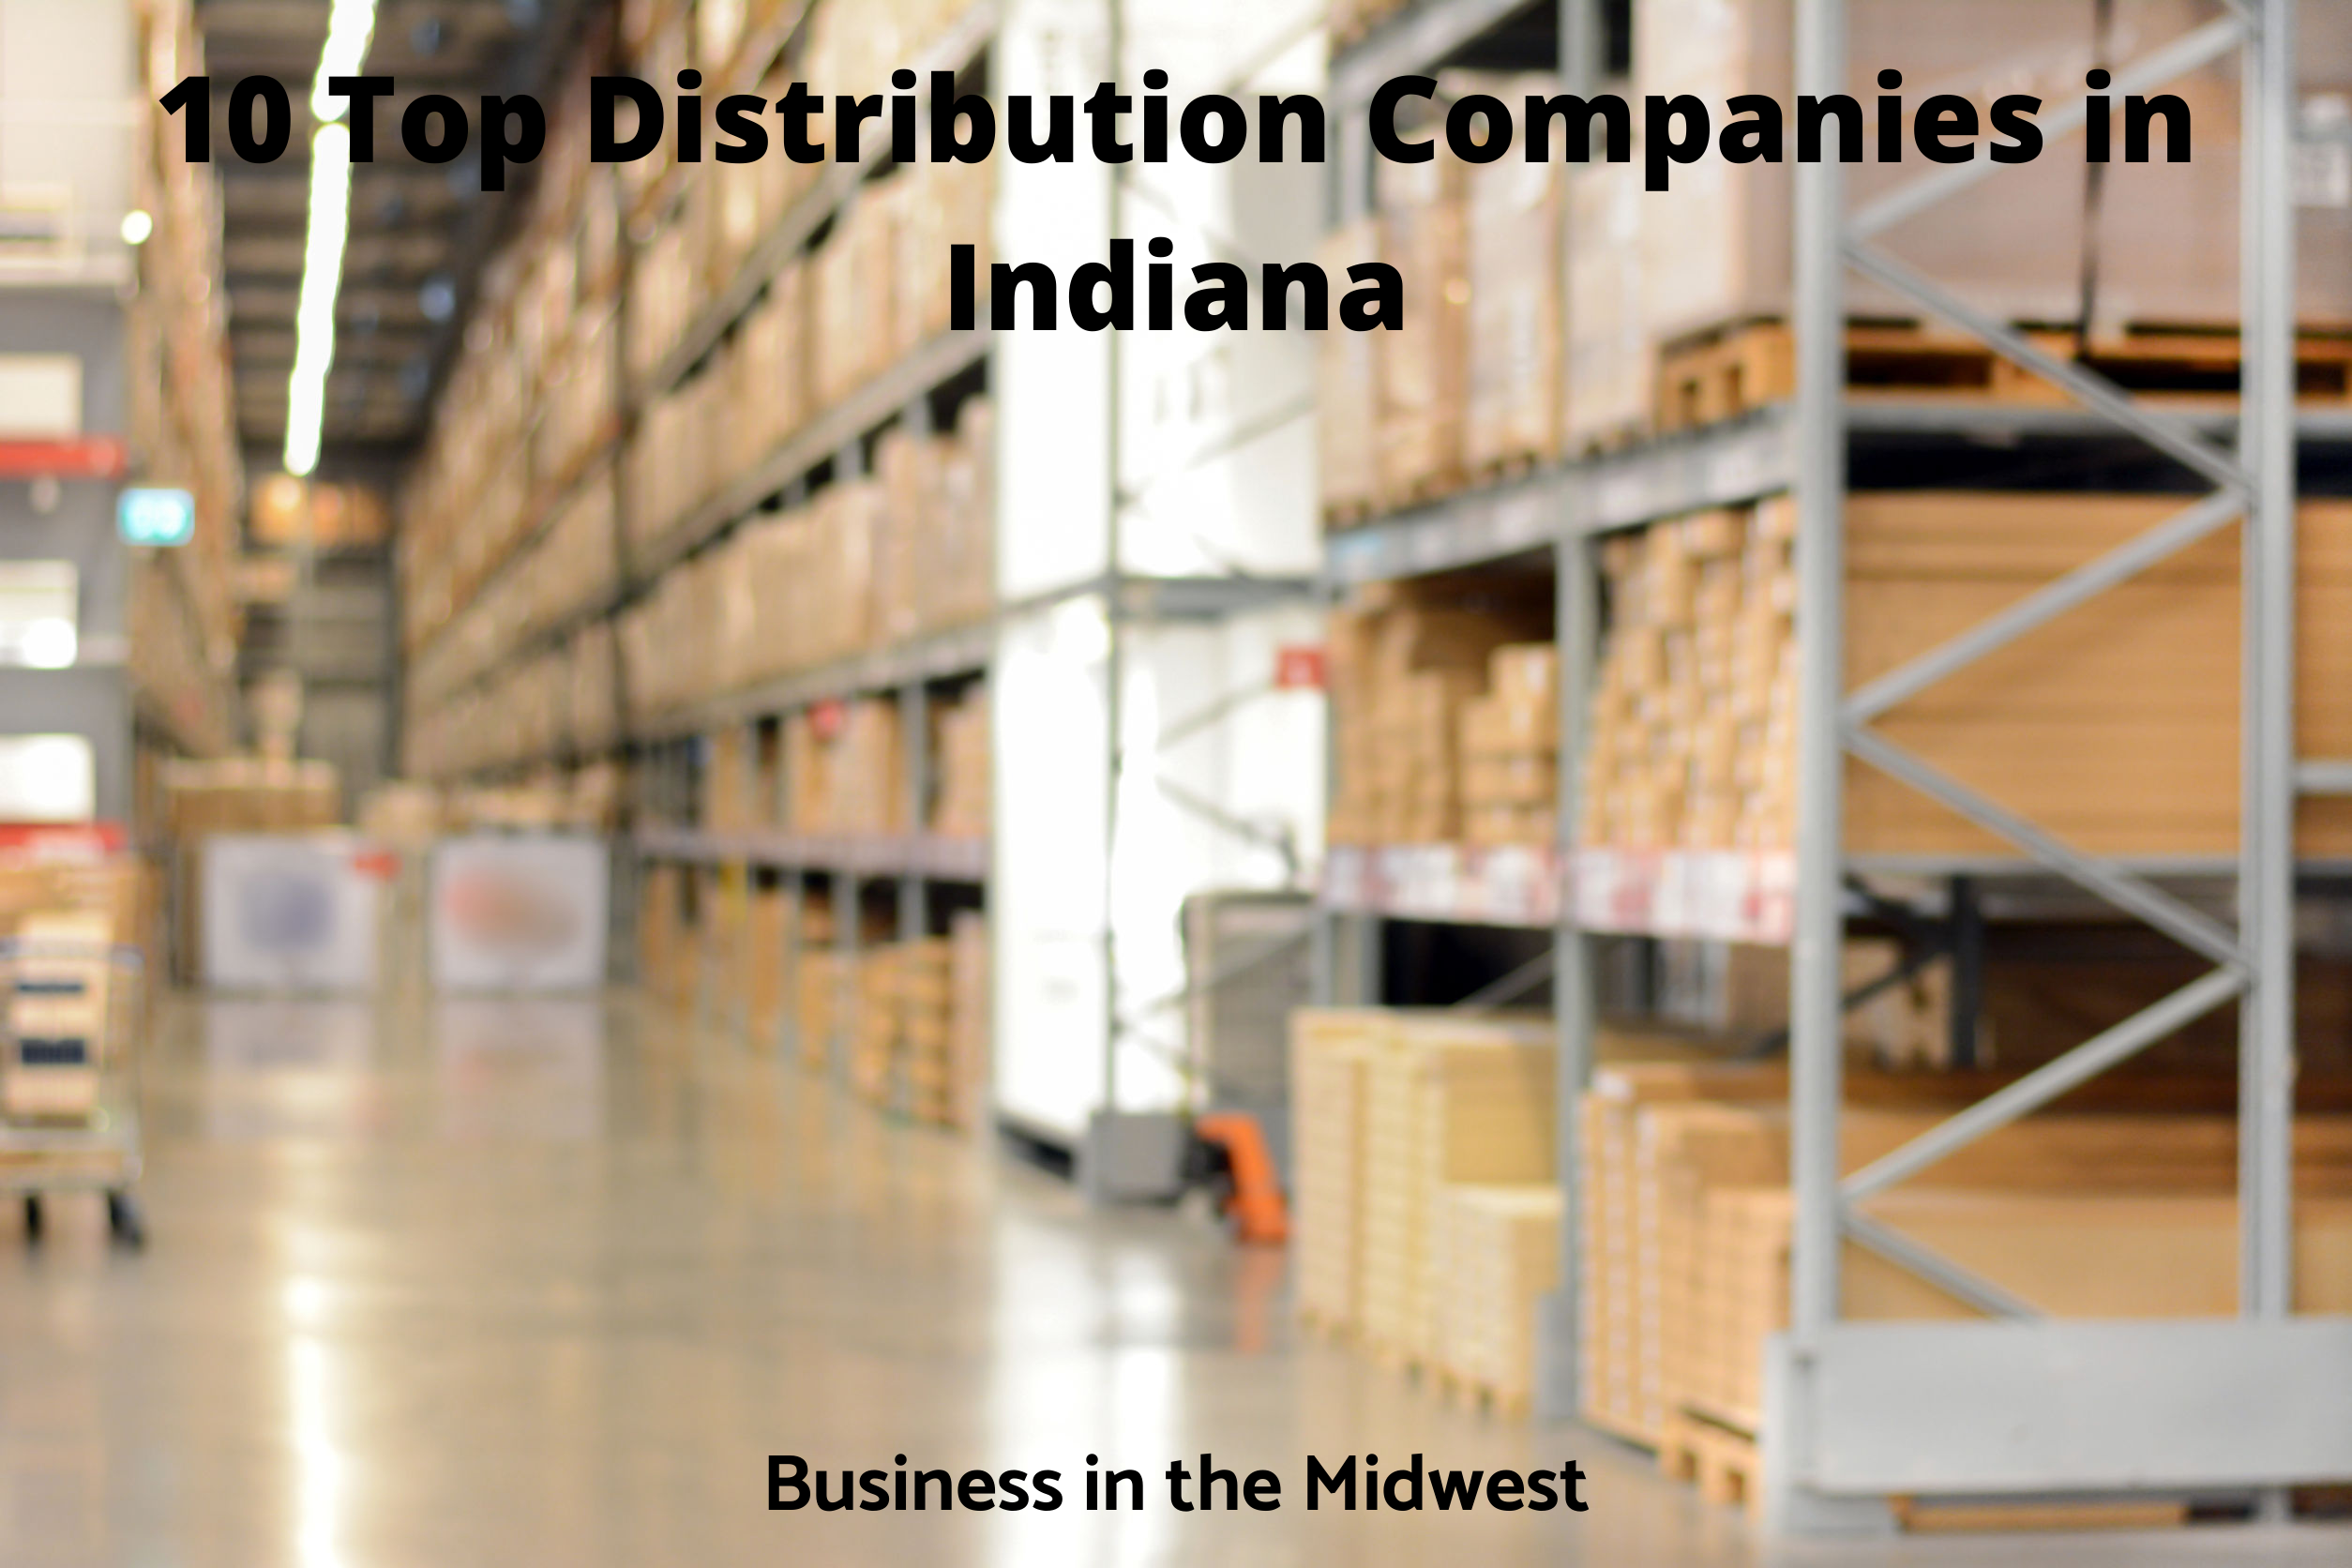 What is the main industry in Indiana?